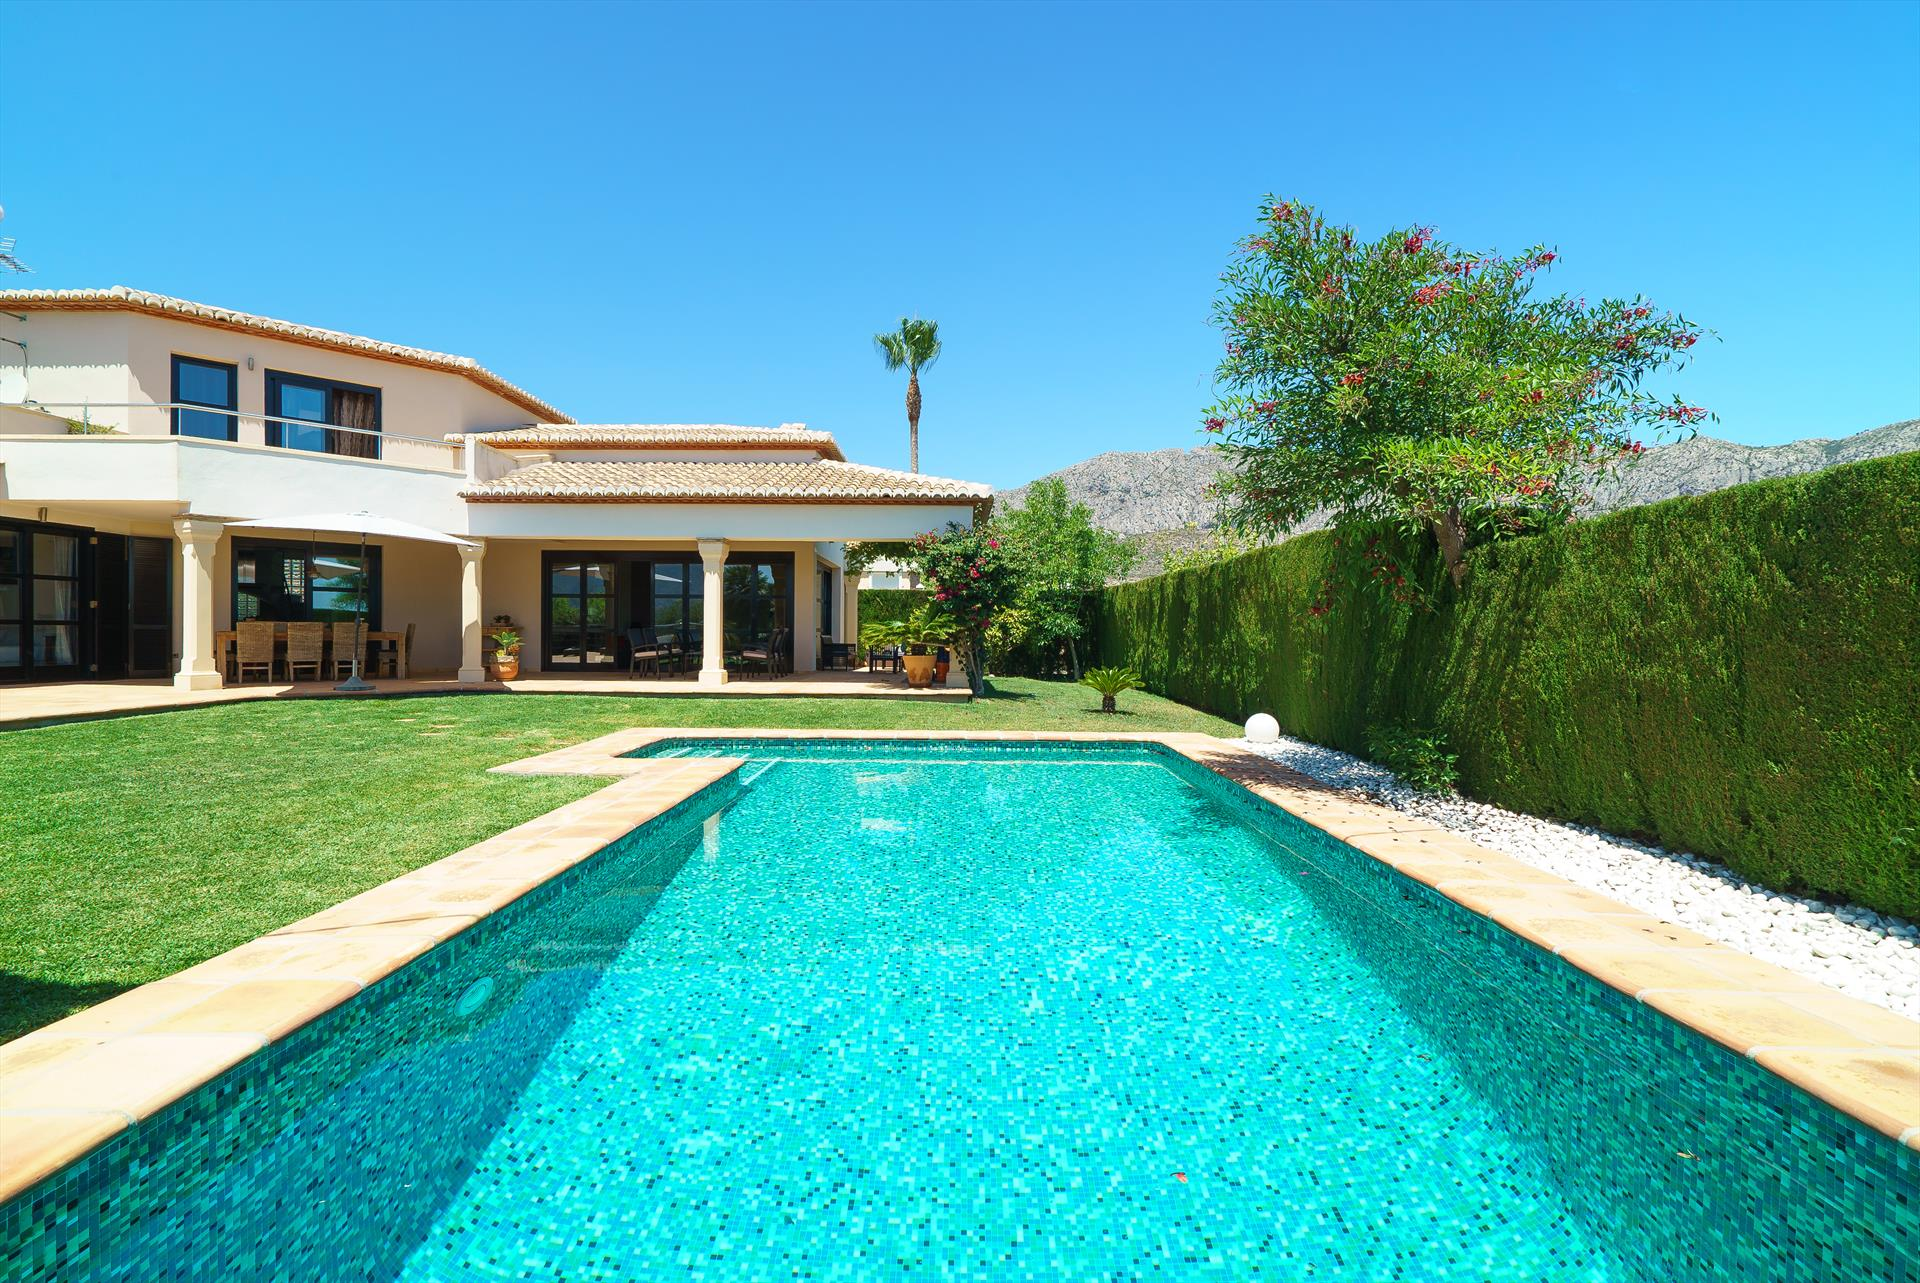 Daru dunya 4, Lovely and comfortable luxury villa in Denia, on the Costa Blanca, Spain  with private pool for 4 persons.....